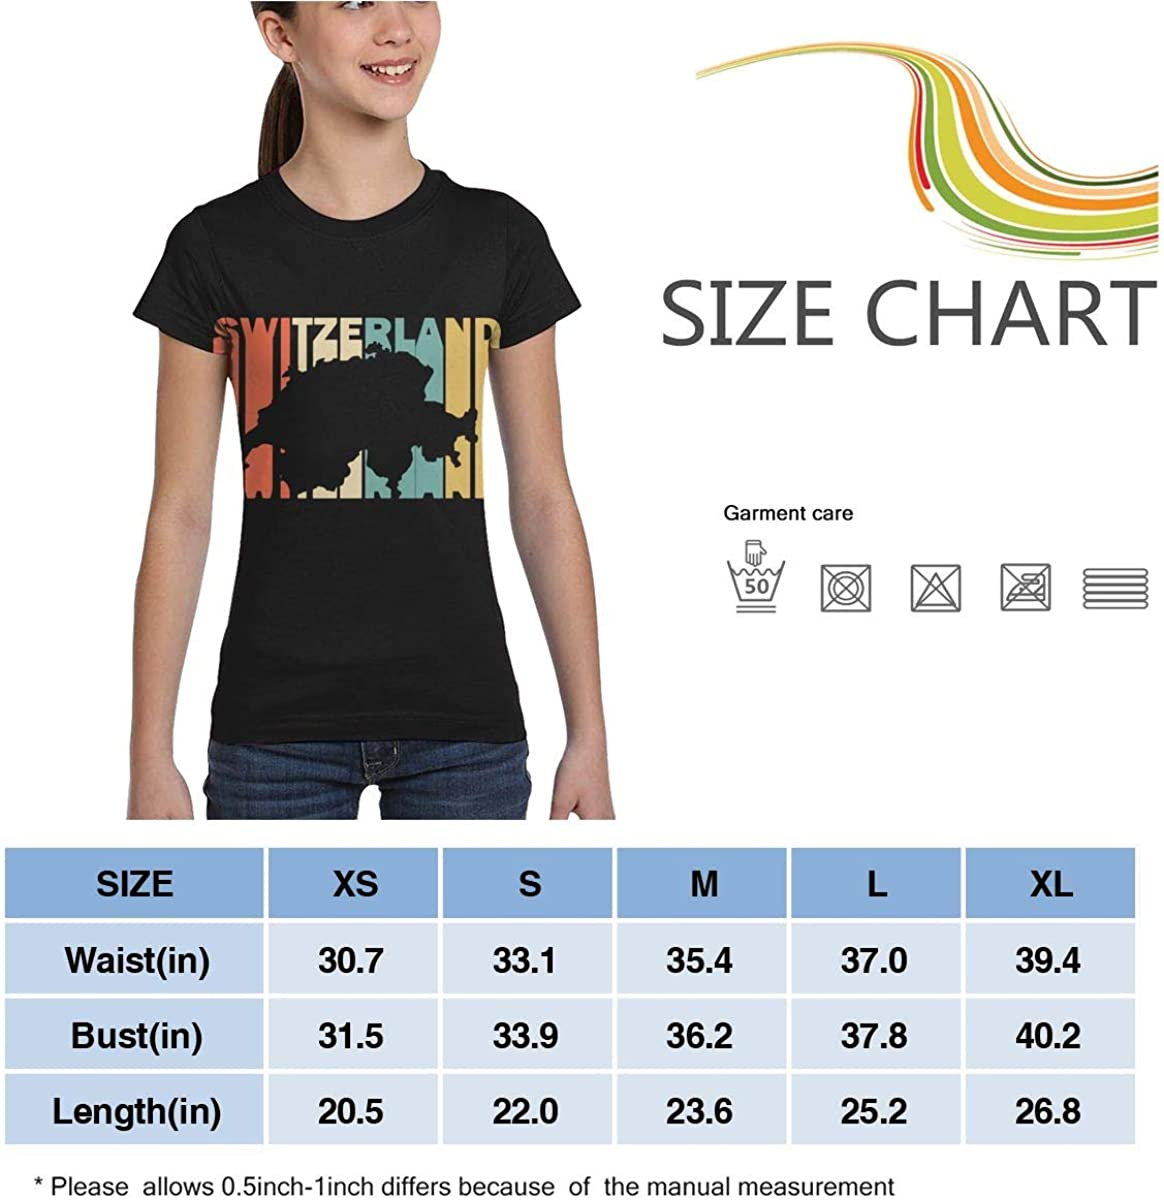 Casual Tunic Shirt Dress Girls Short Sleeve Retro Style Switzerland Silhouette T-Shirts XS-XL